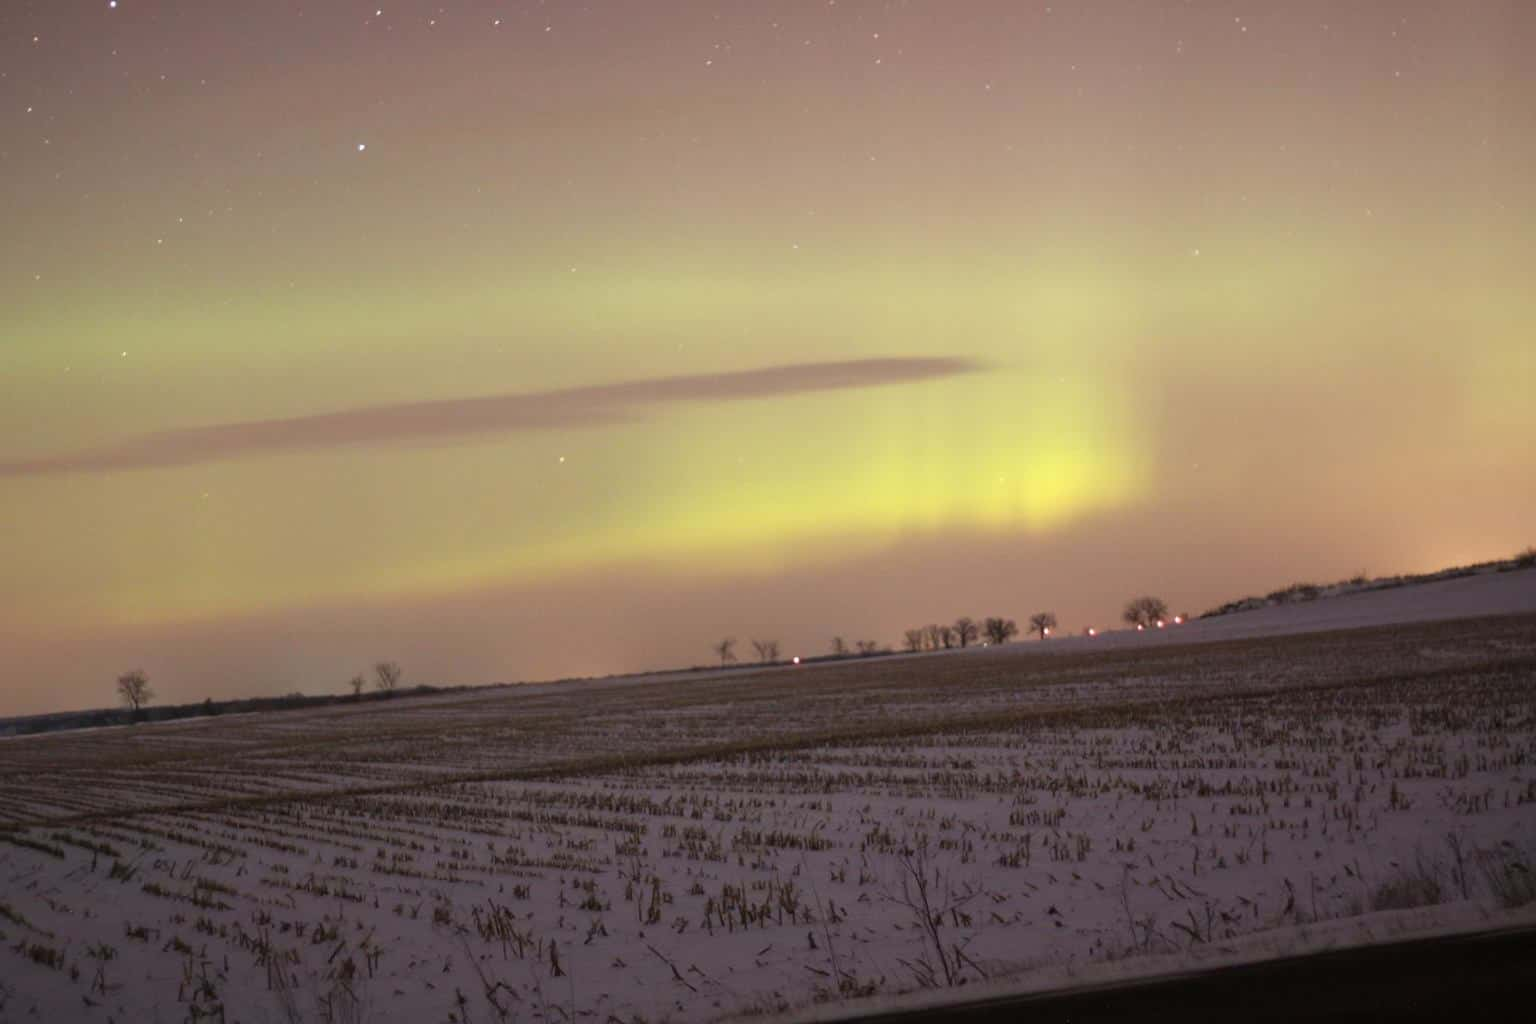 The northern lights. My first sighting ever, tonight, near Lowville, WI. Super excited about it, was so cool. With the Canon 50D